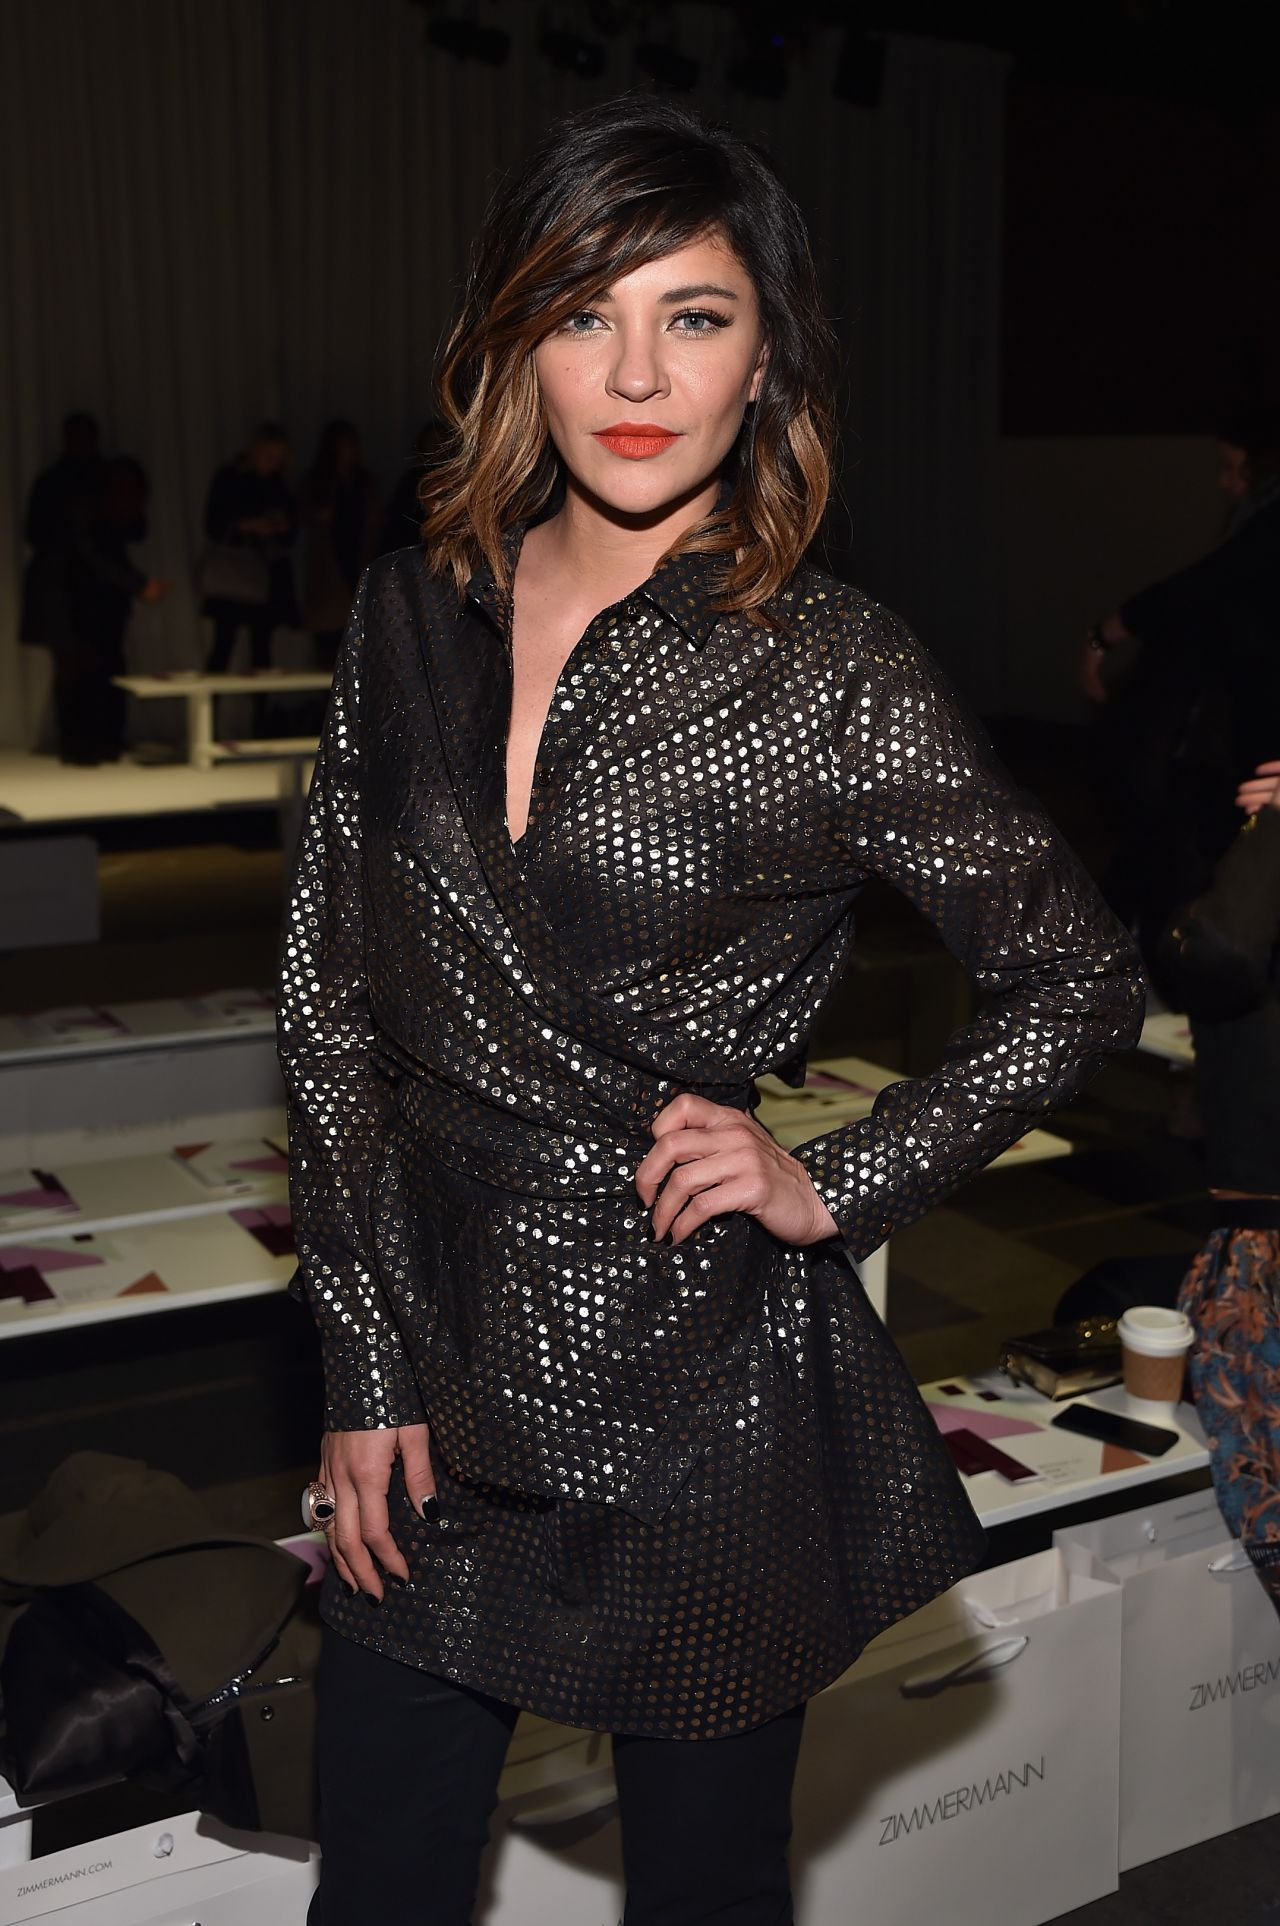 Jessica Szohr - Zimmermann Fashion Show in New York City, Feb. 2015